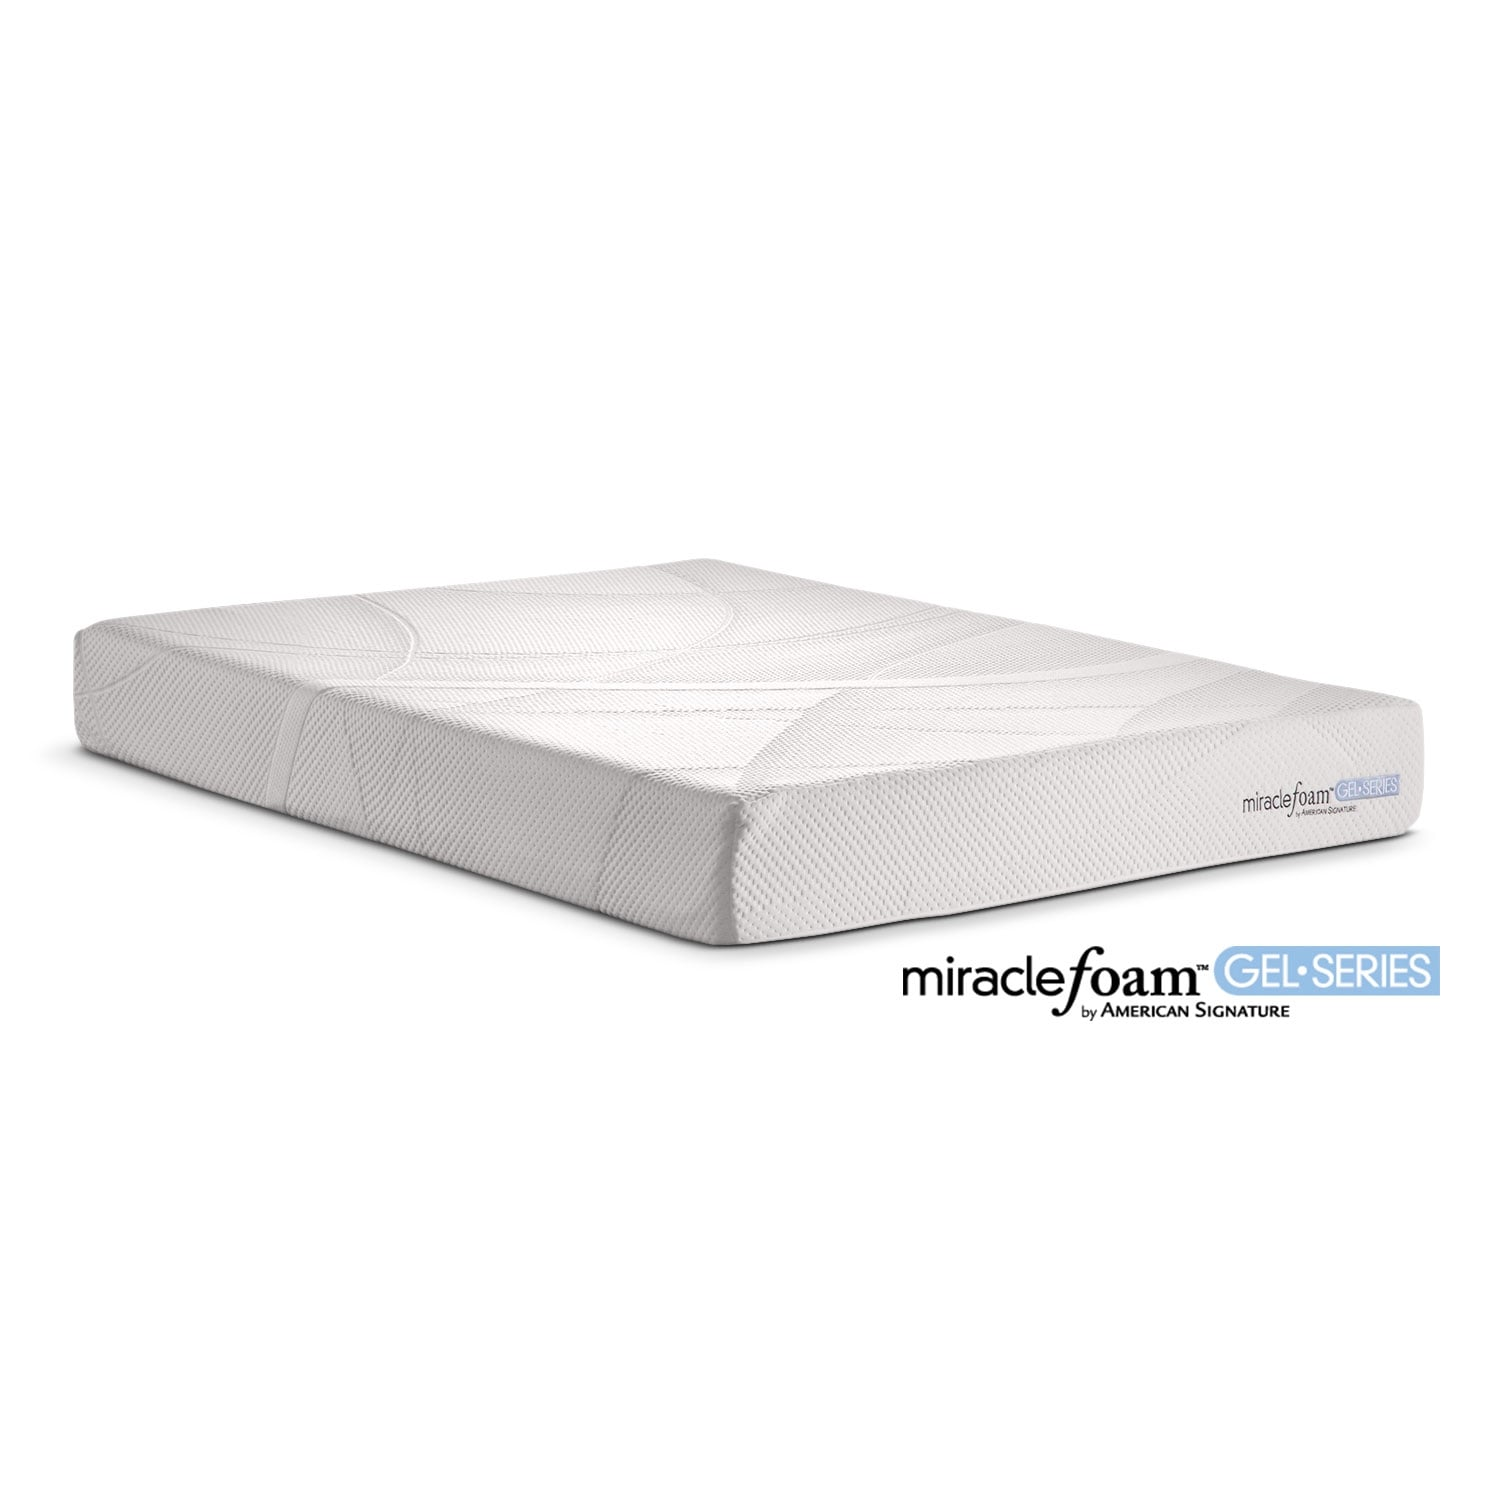 Mattresses and Bedding - Rejuvenate II King Mattress